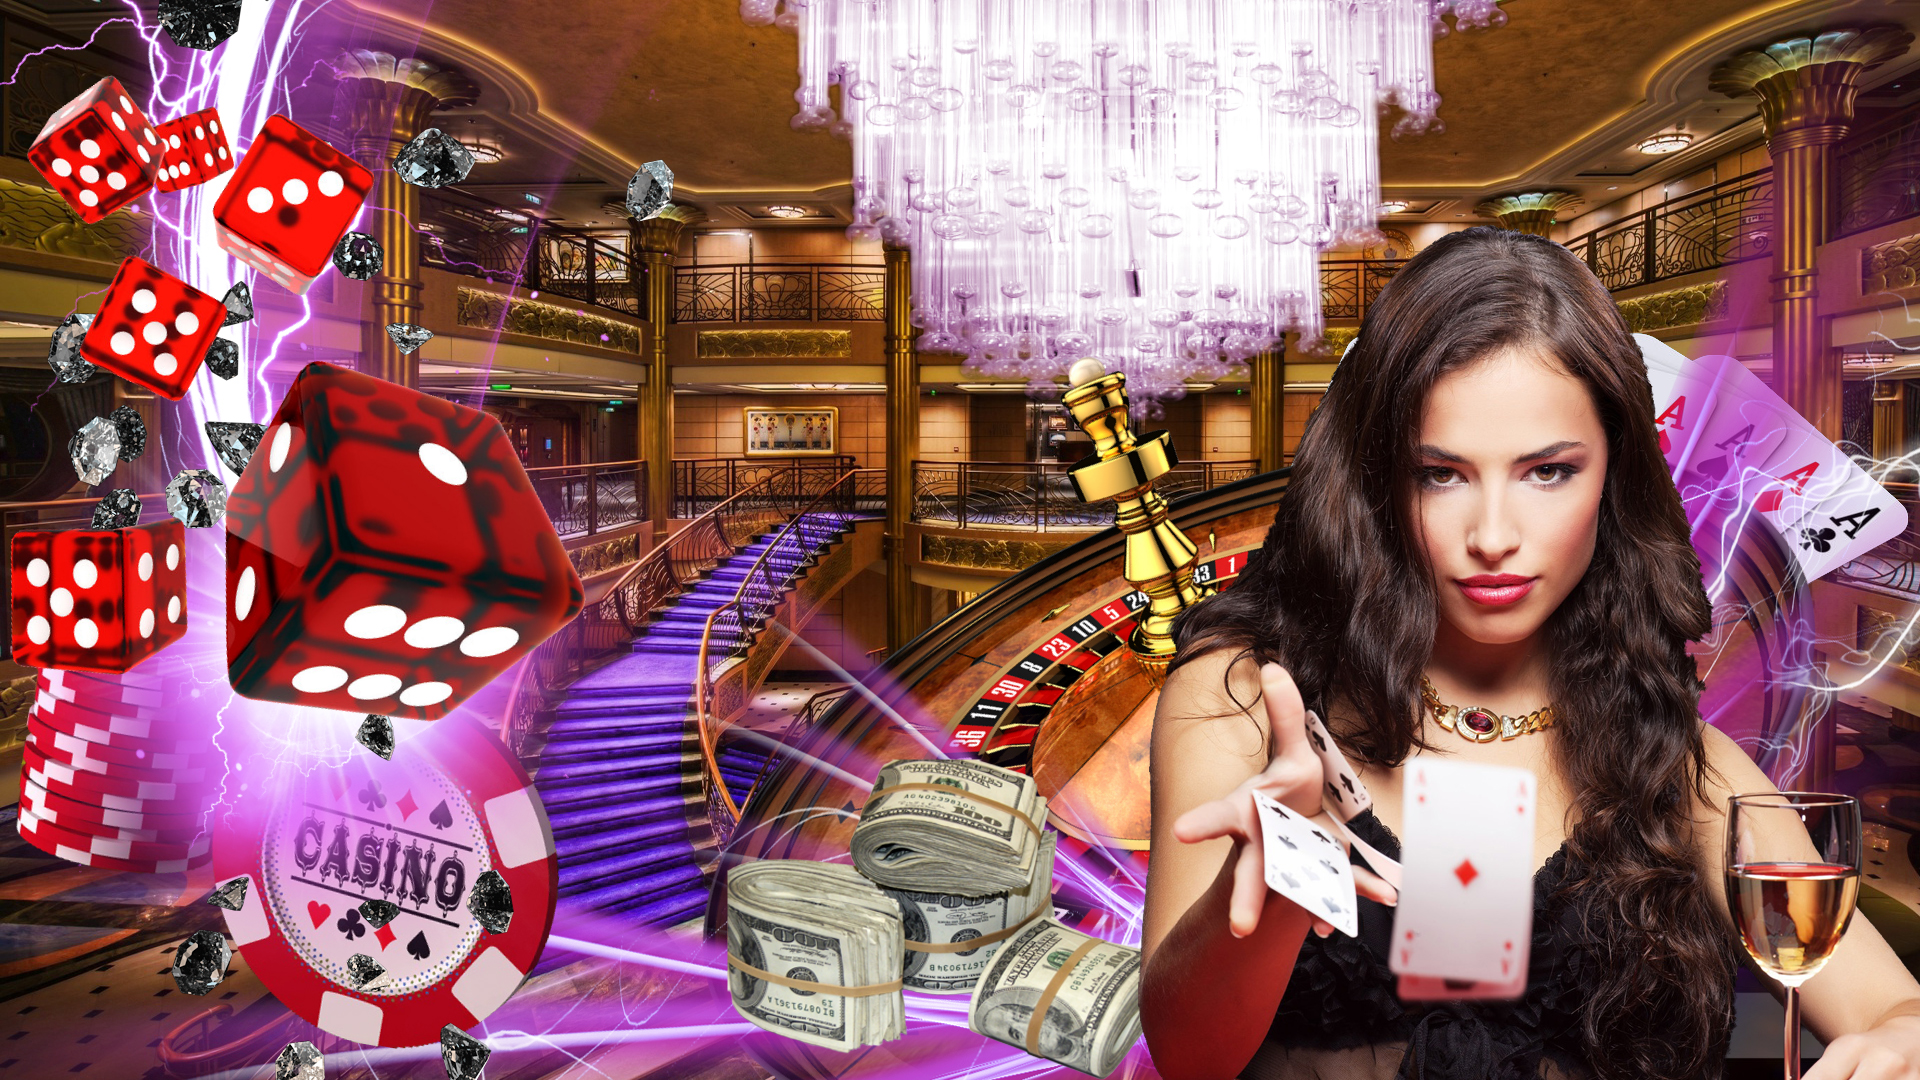 Exist Any Tricks For Winning At Slots